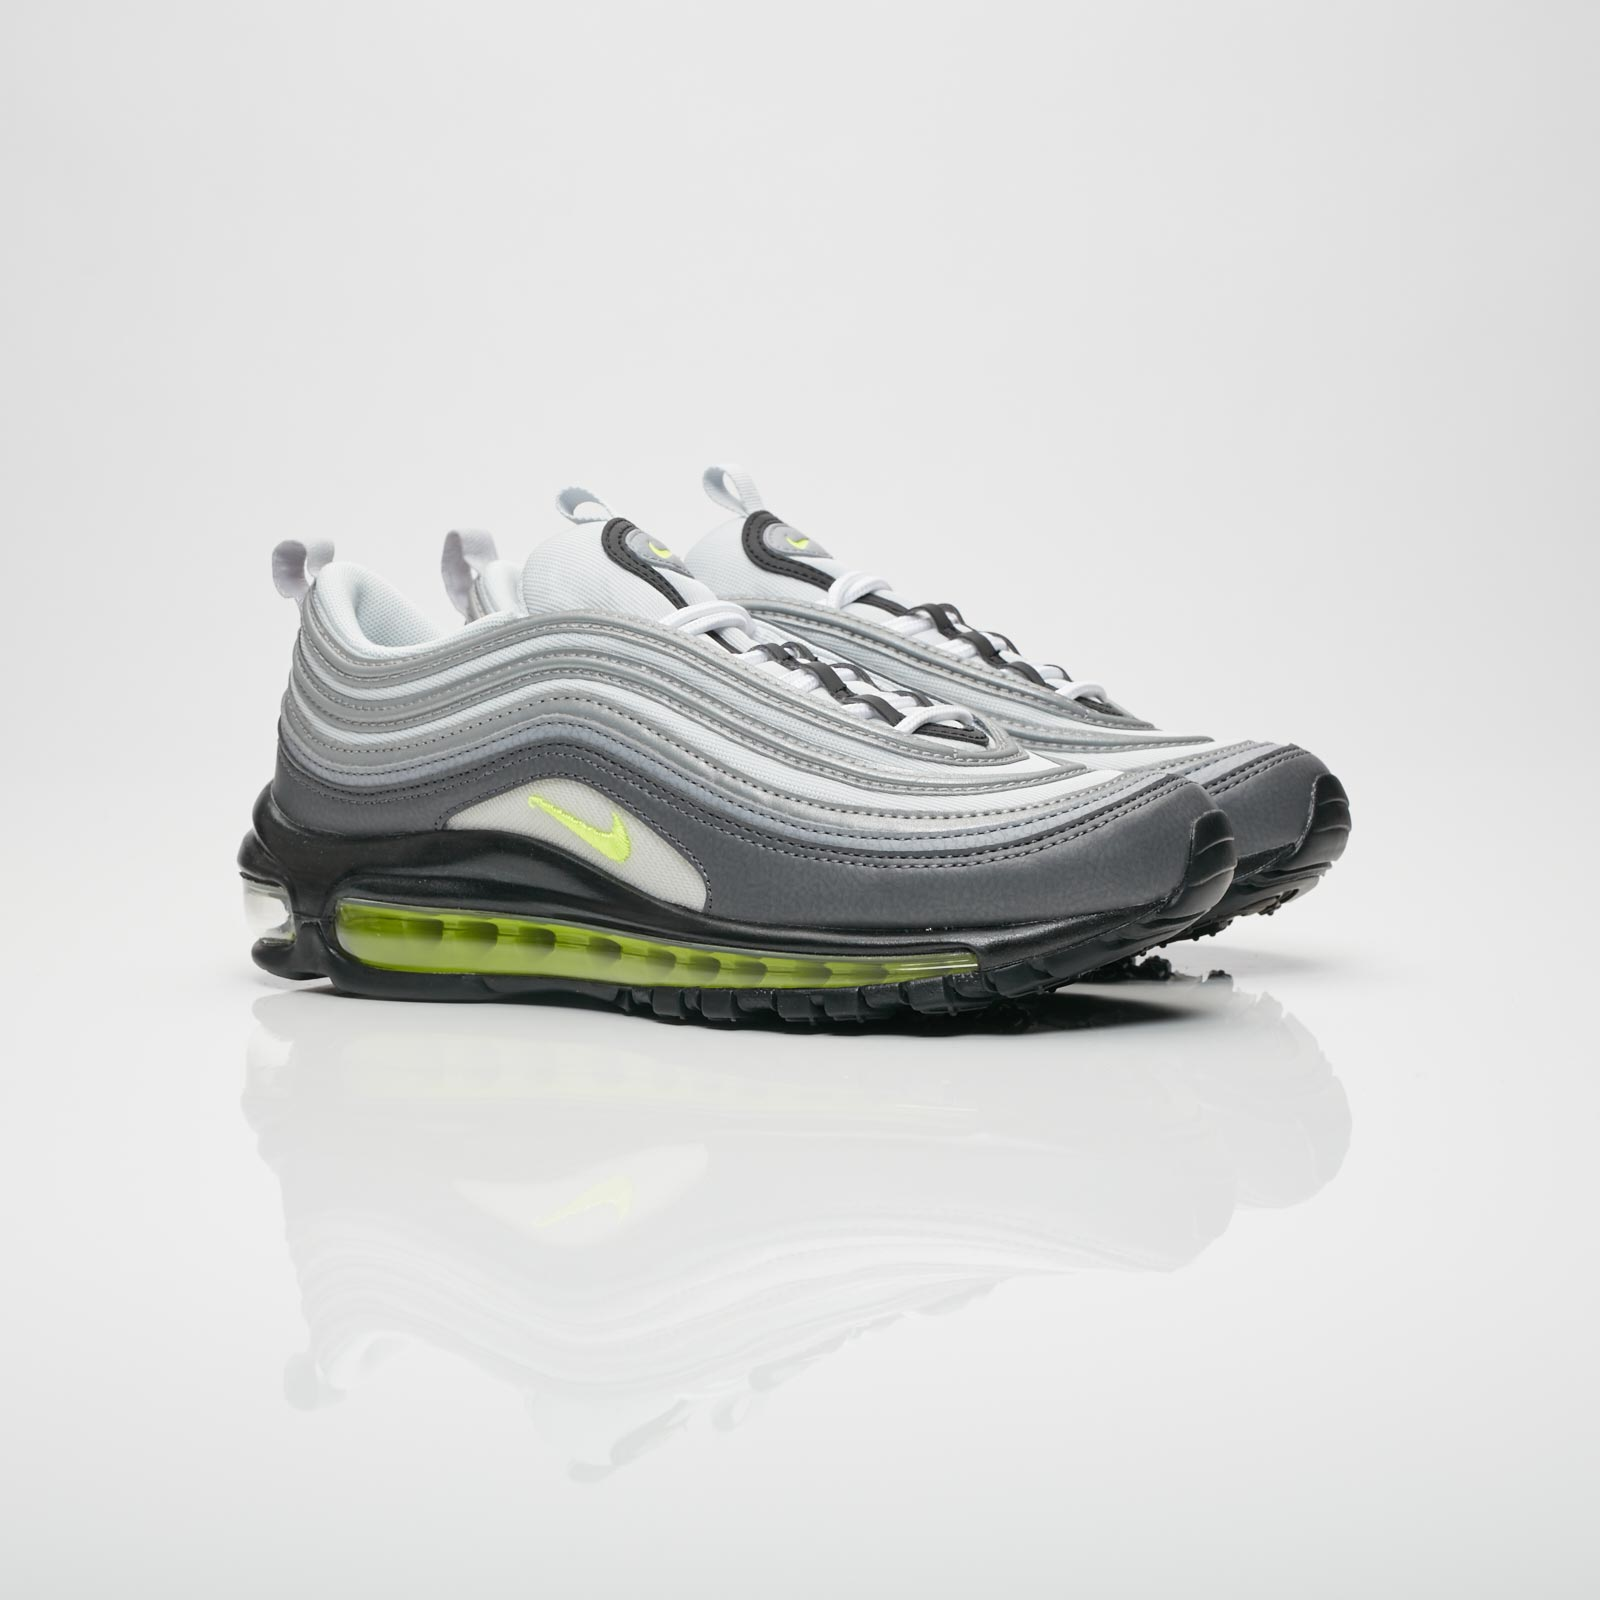 7cd092ff33f4b2 Nike Wmns Air Max 97 - 921733-003 - Sneakersnstuff